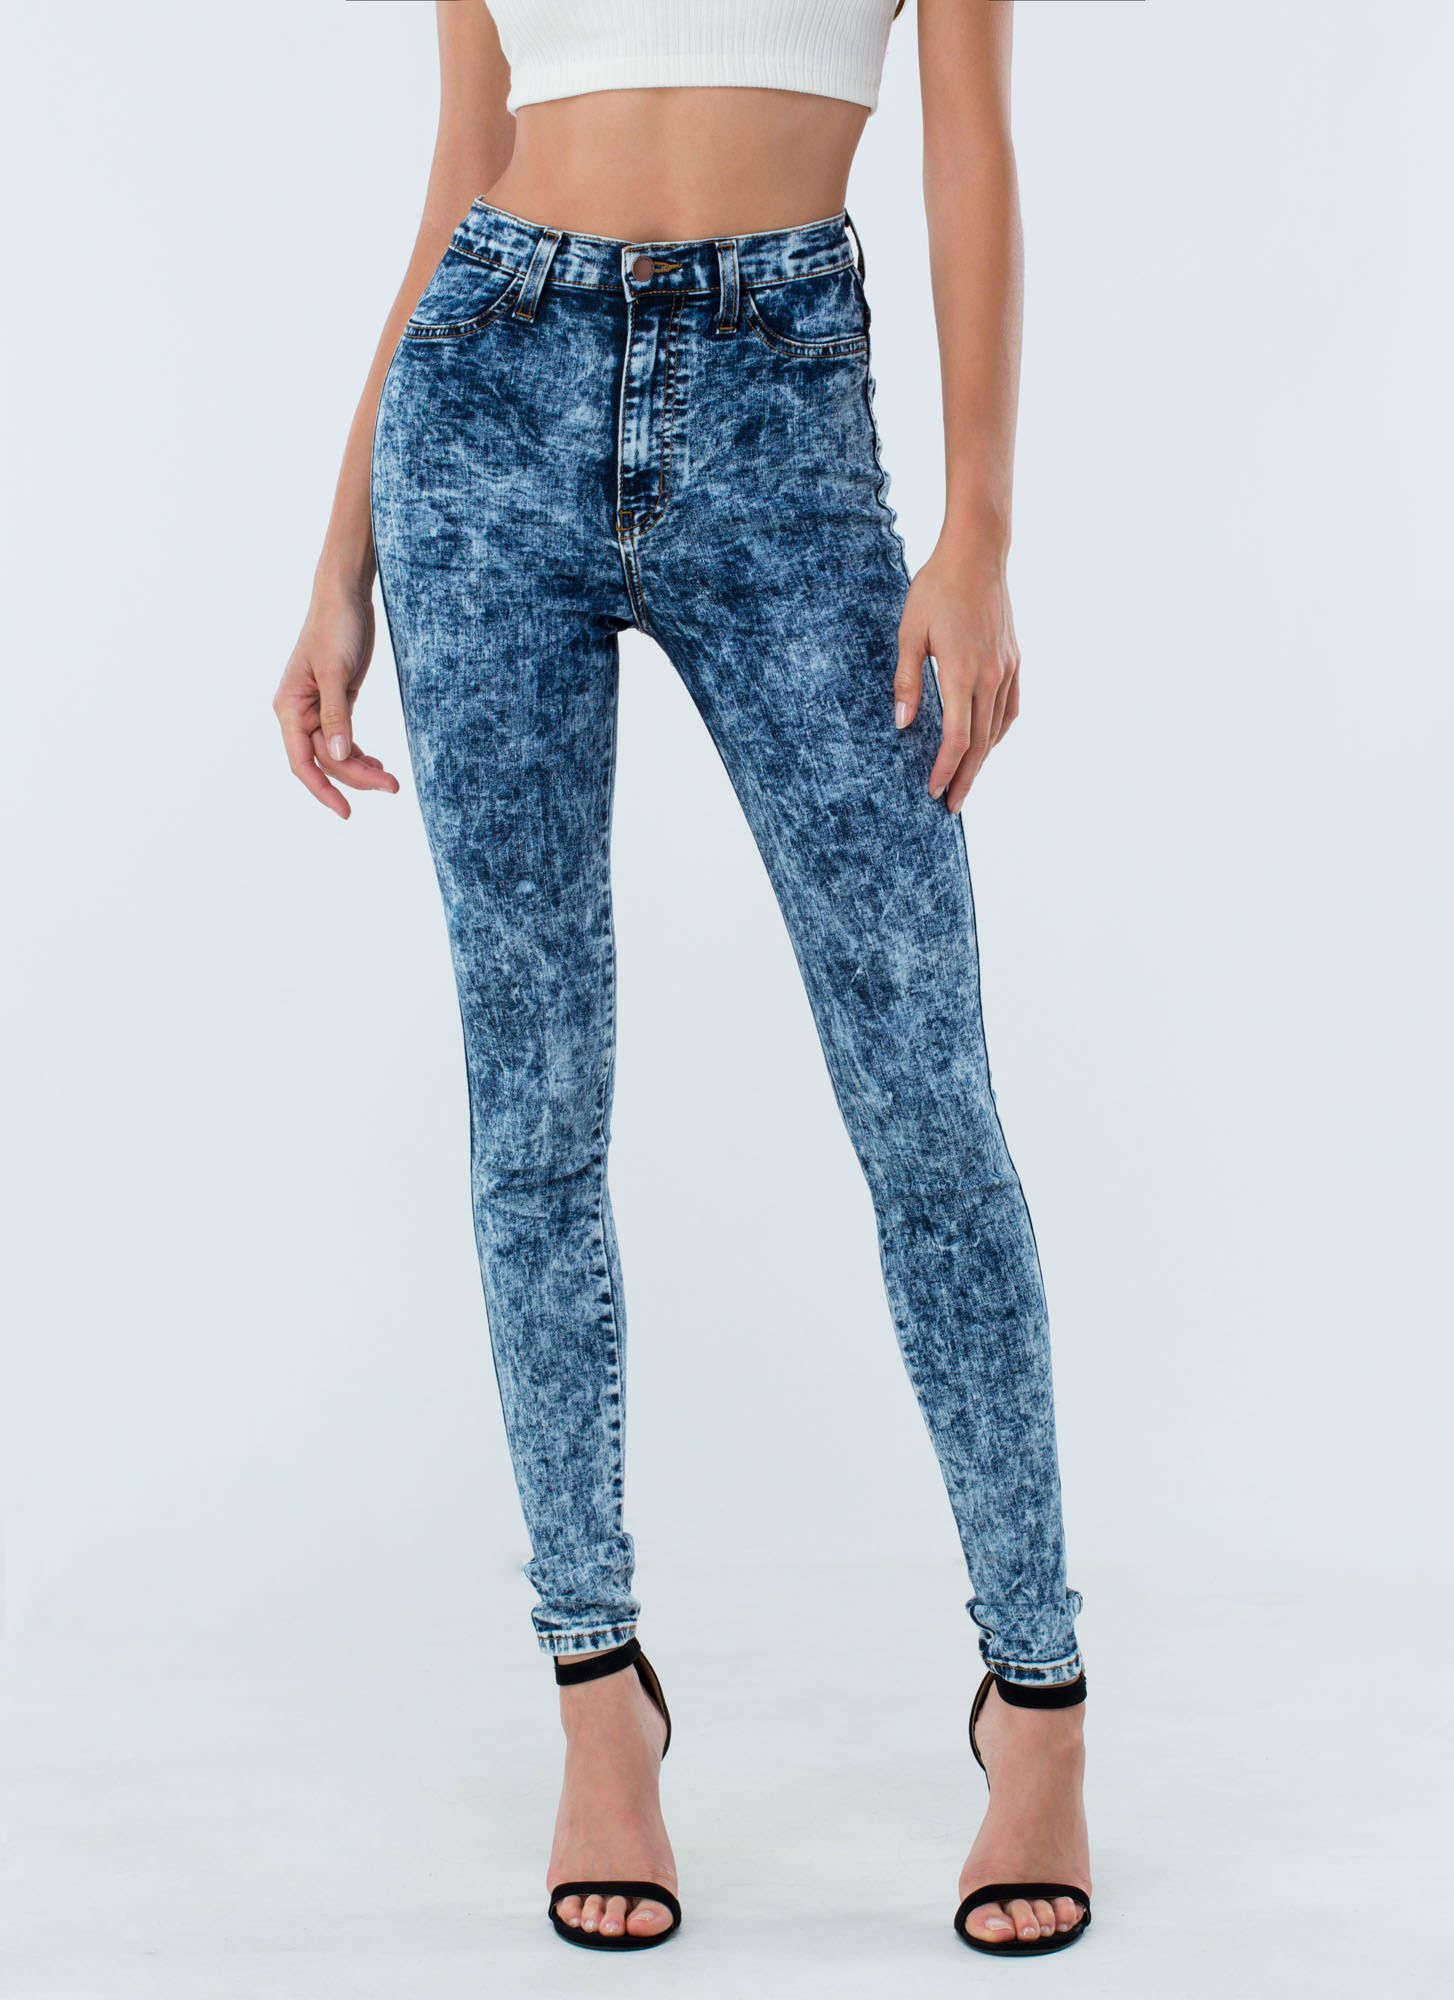 Park Art|My WordPress Blog_How To Acid Wash Jeans With Pumice Stone